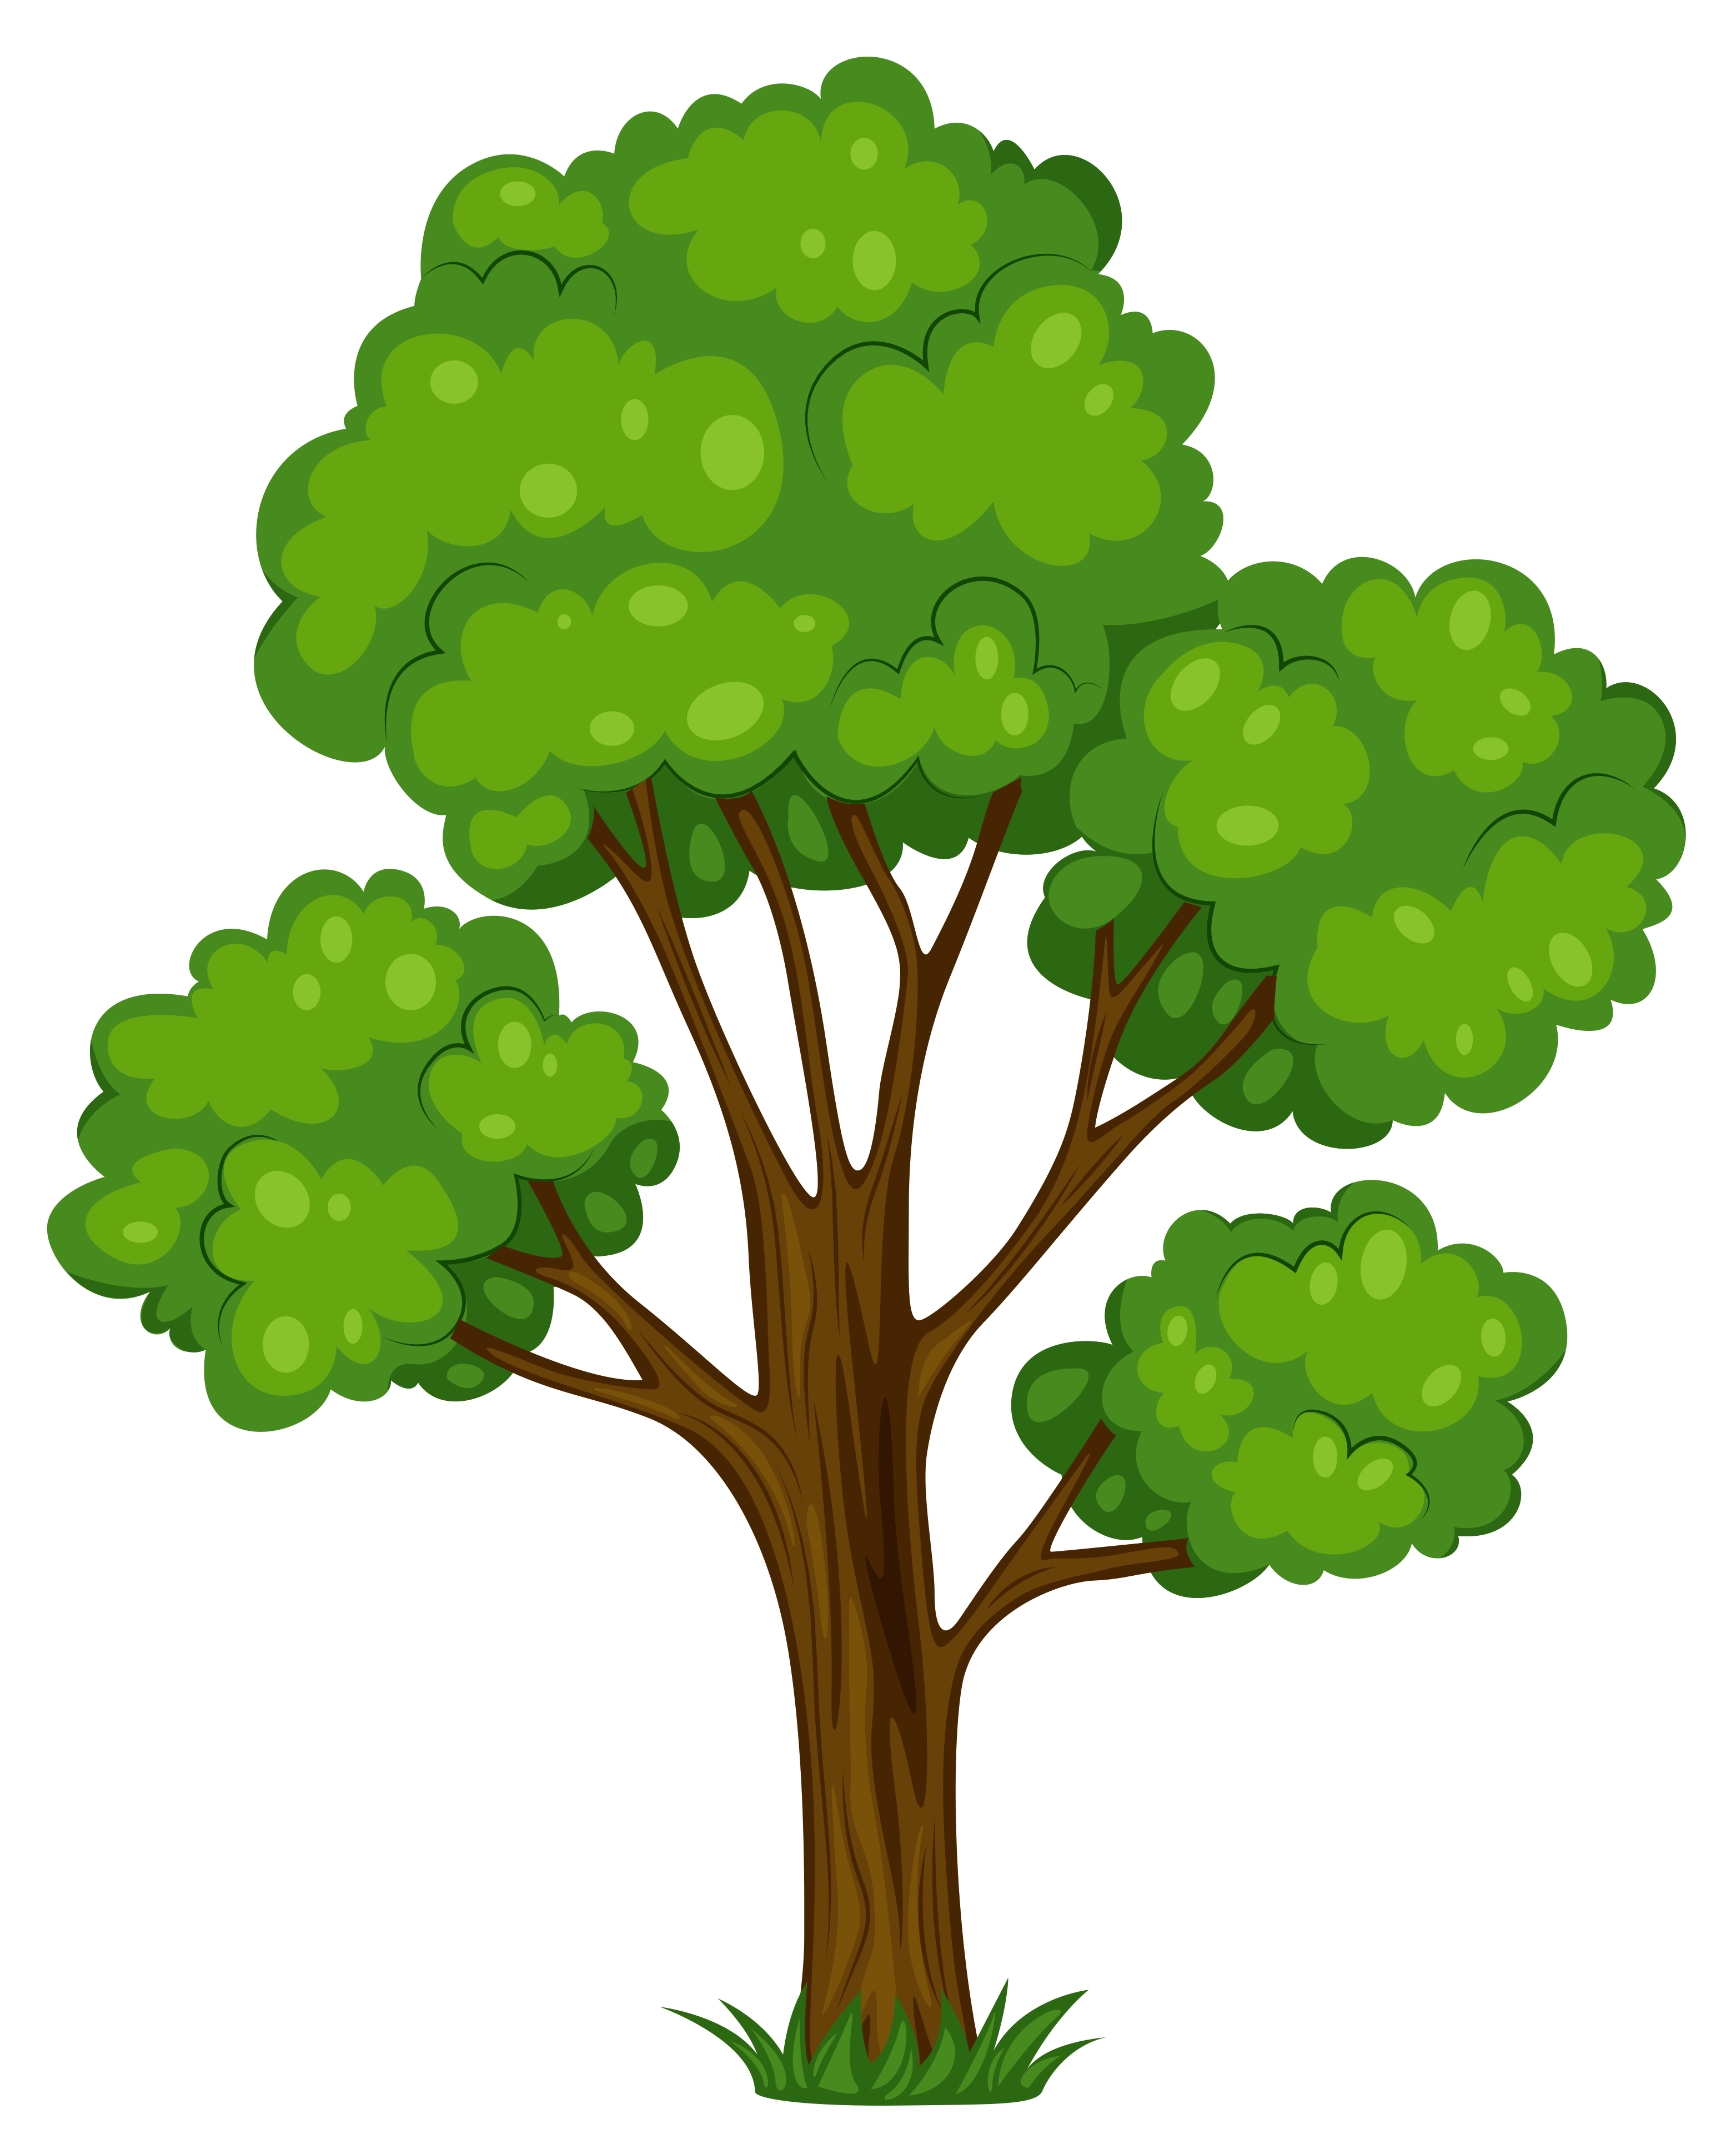 Tree Clipart & Tree Clip Art Images.